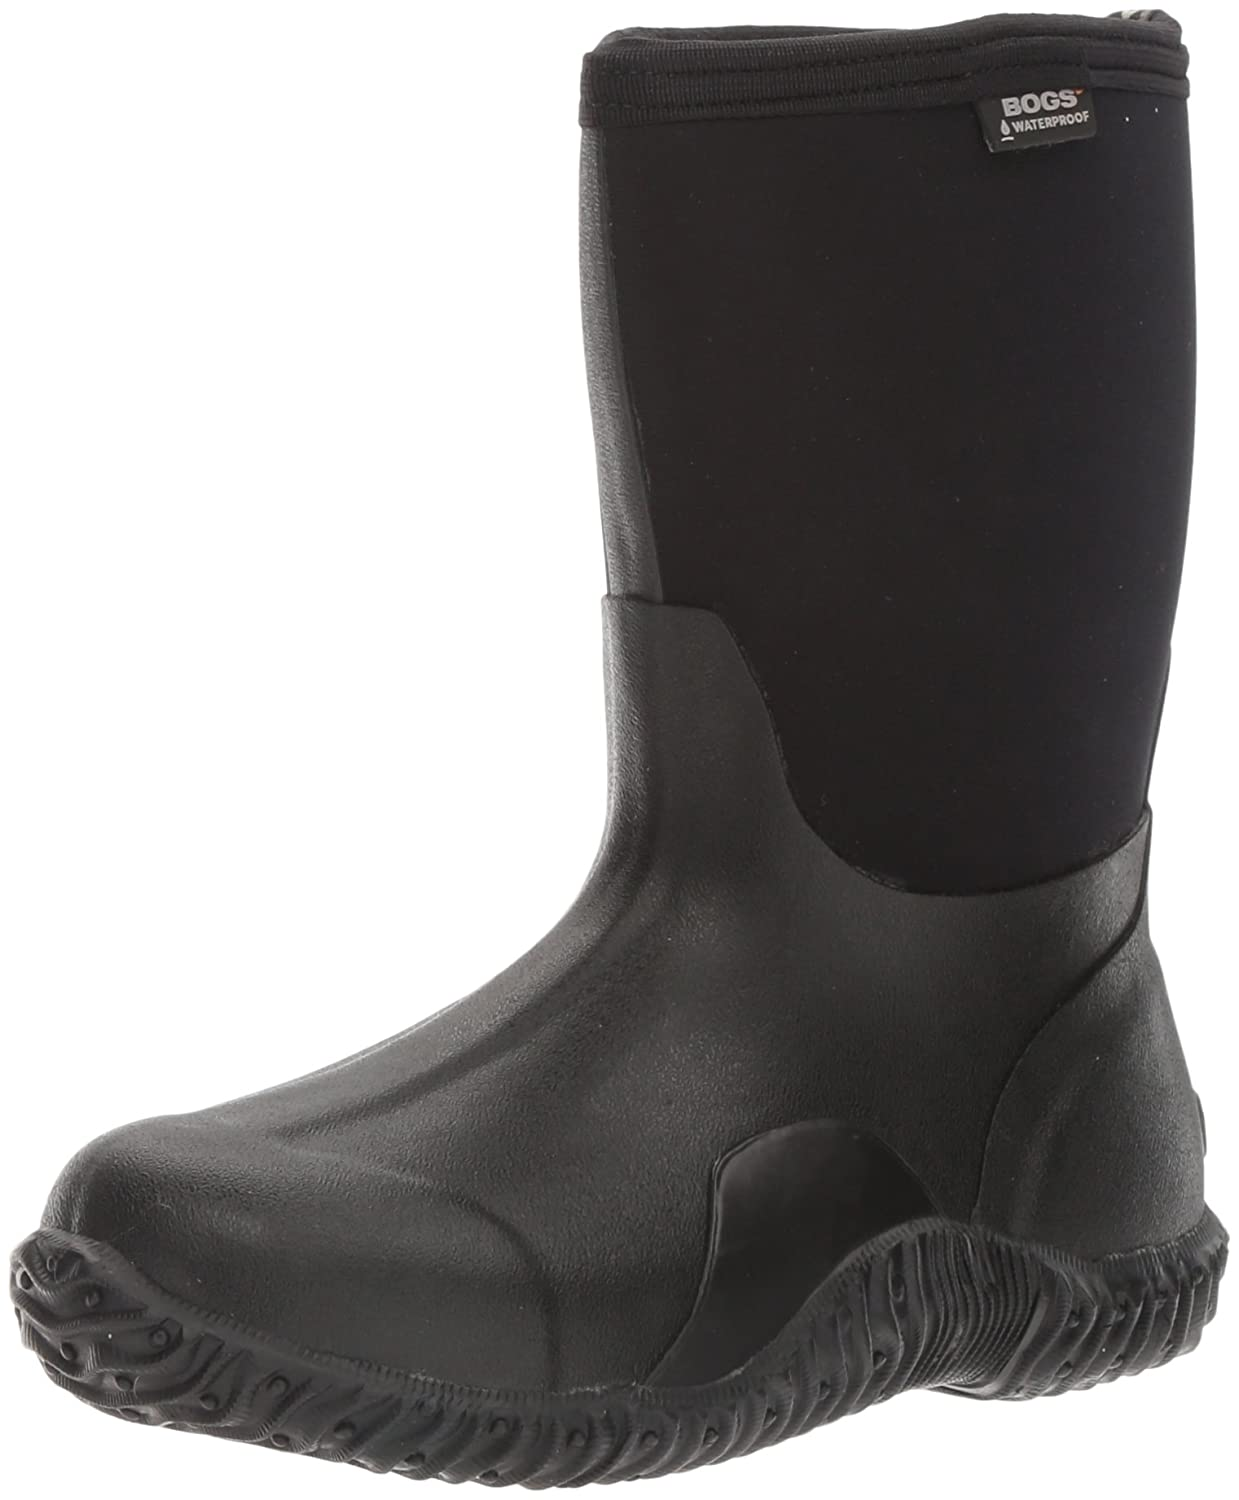 Bogs Women's Classic Mid Waterproof Rain Boot B000THBBRK 8 B(M) US|Black